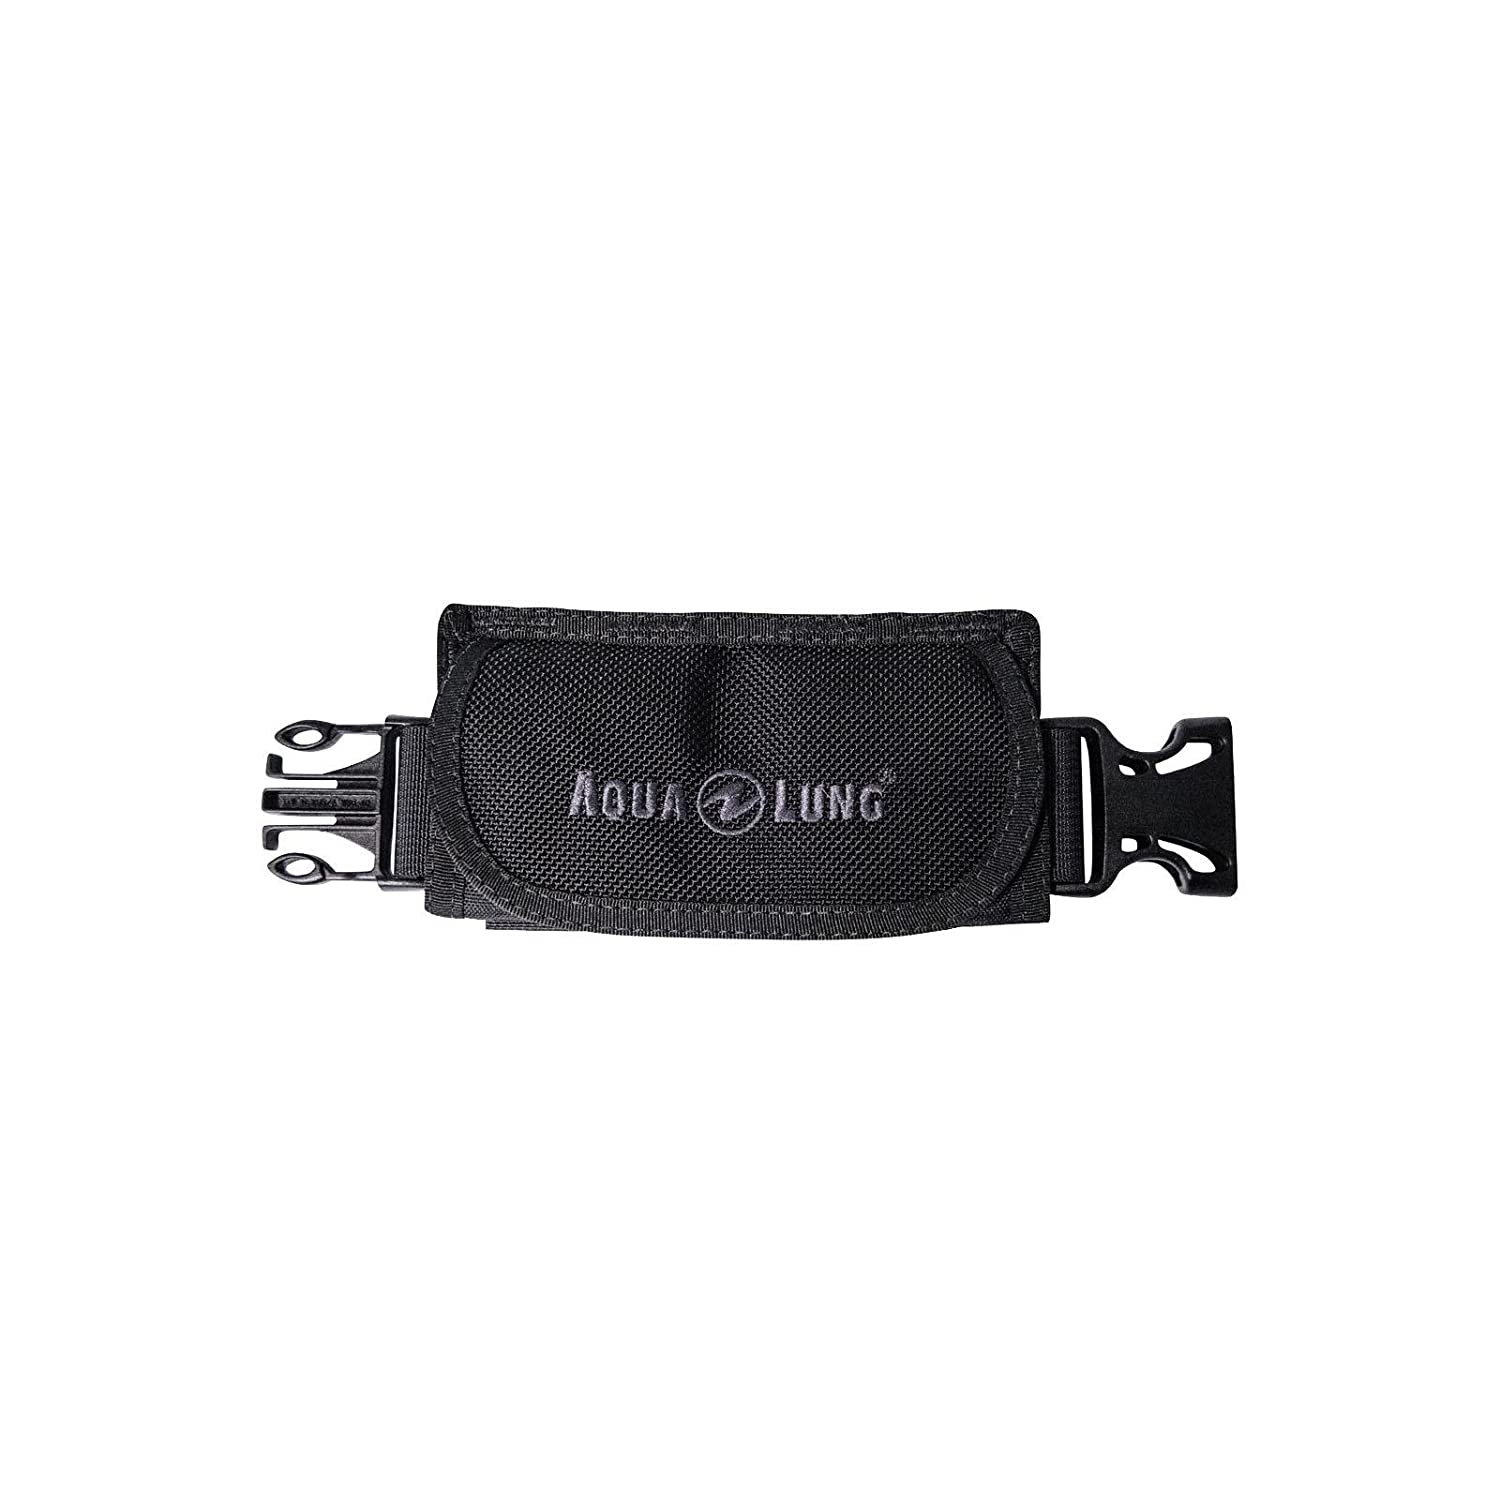 AquaLung 1.5 inch belly strap extension